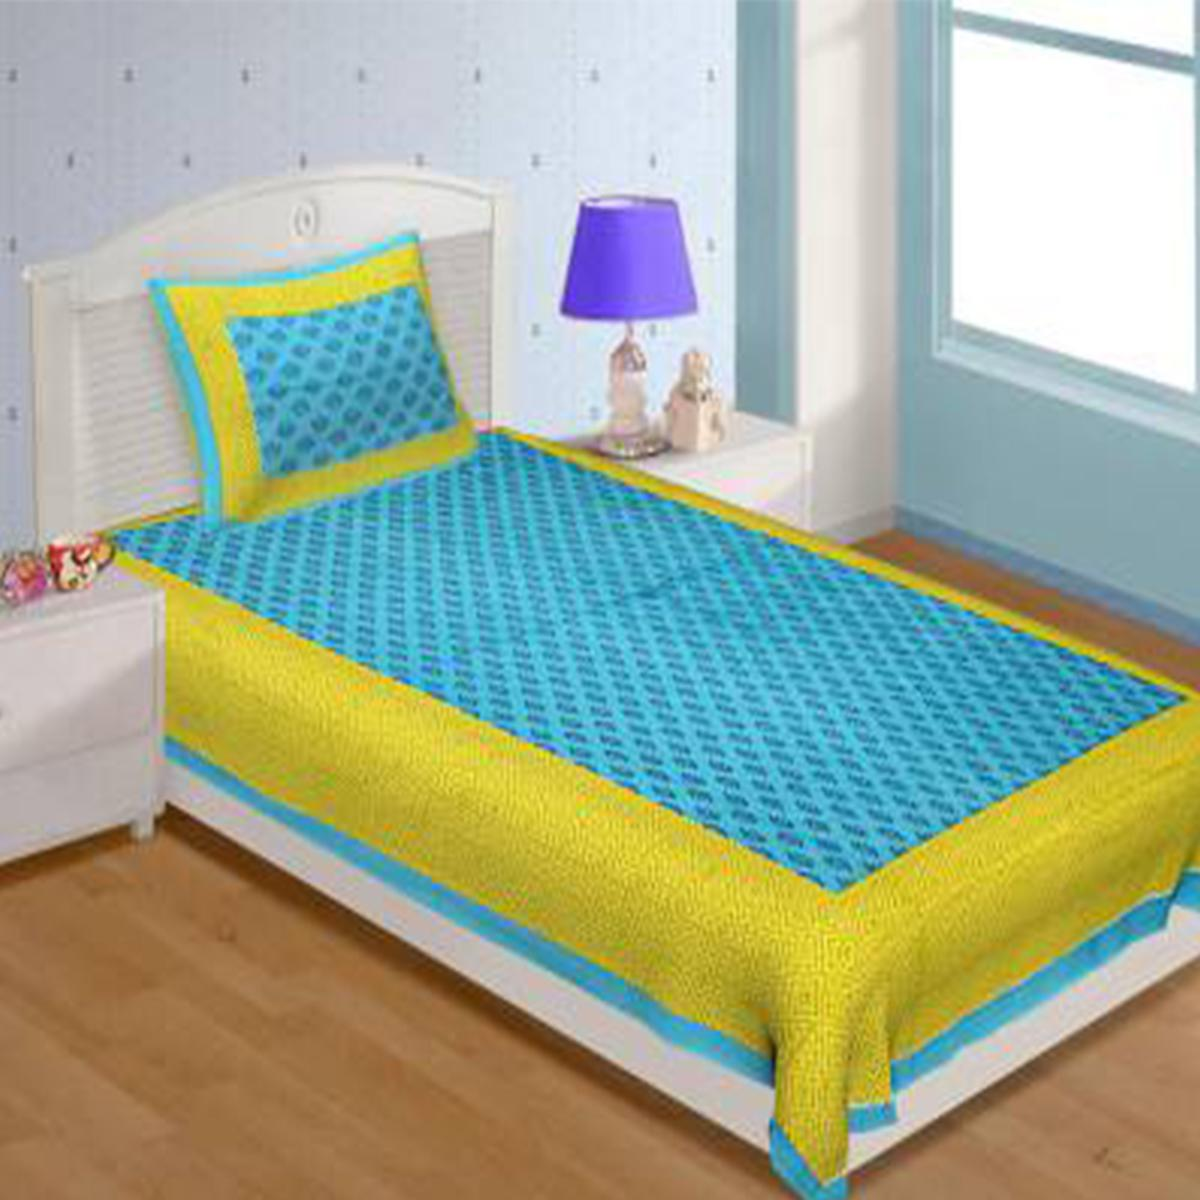 POOJA FASHION - Green Colored Printed Single Cotton Bedsheet With 1 Pillow Cover